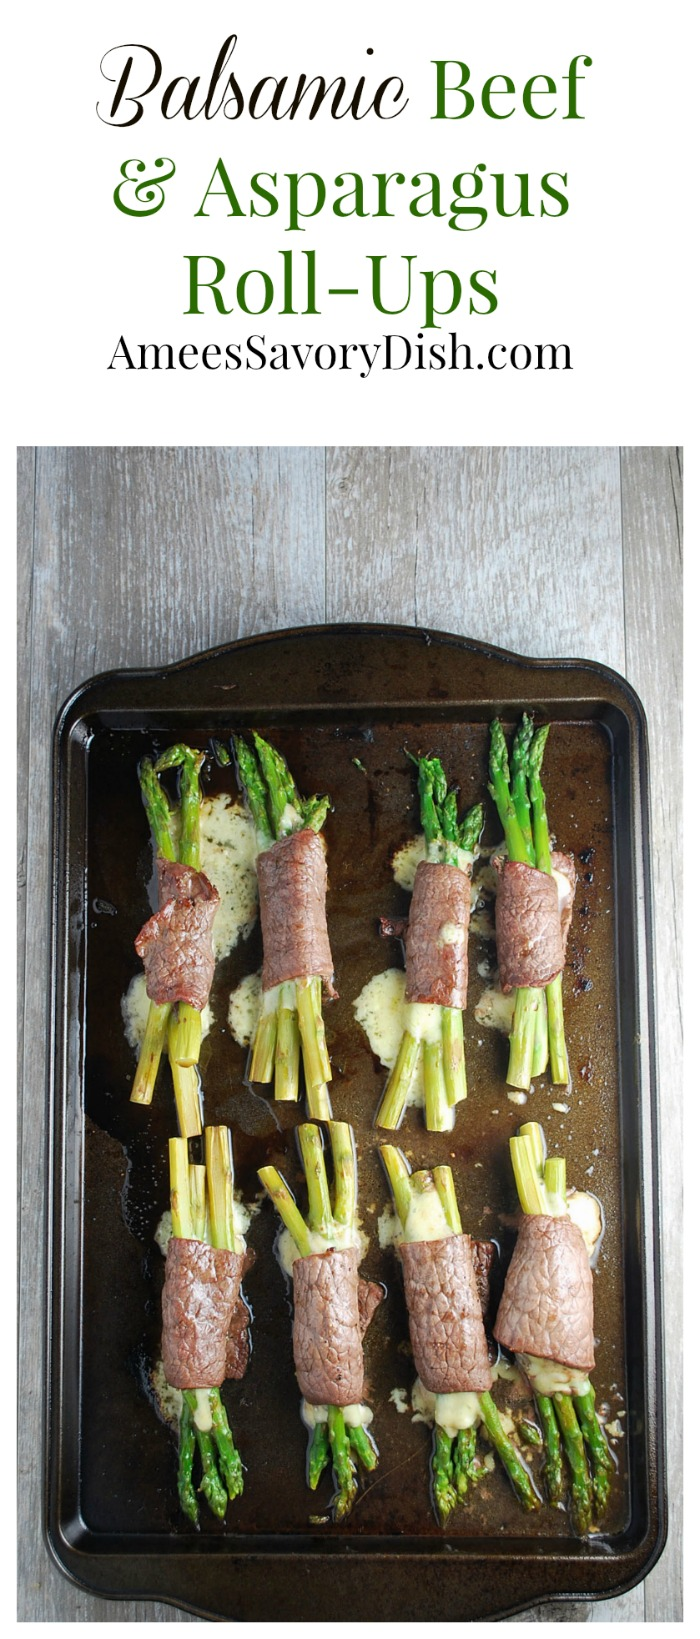 balsamic beef asparagus roll ups